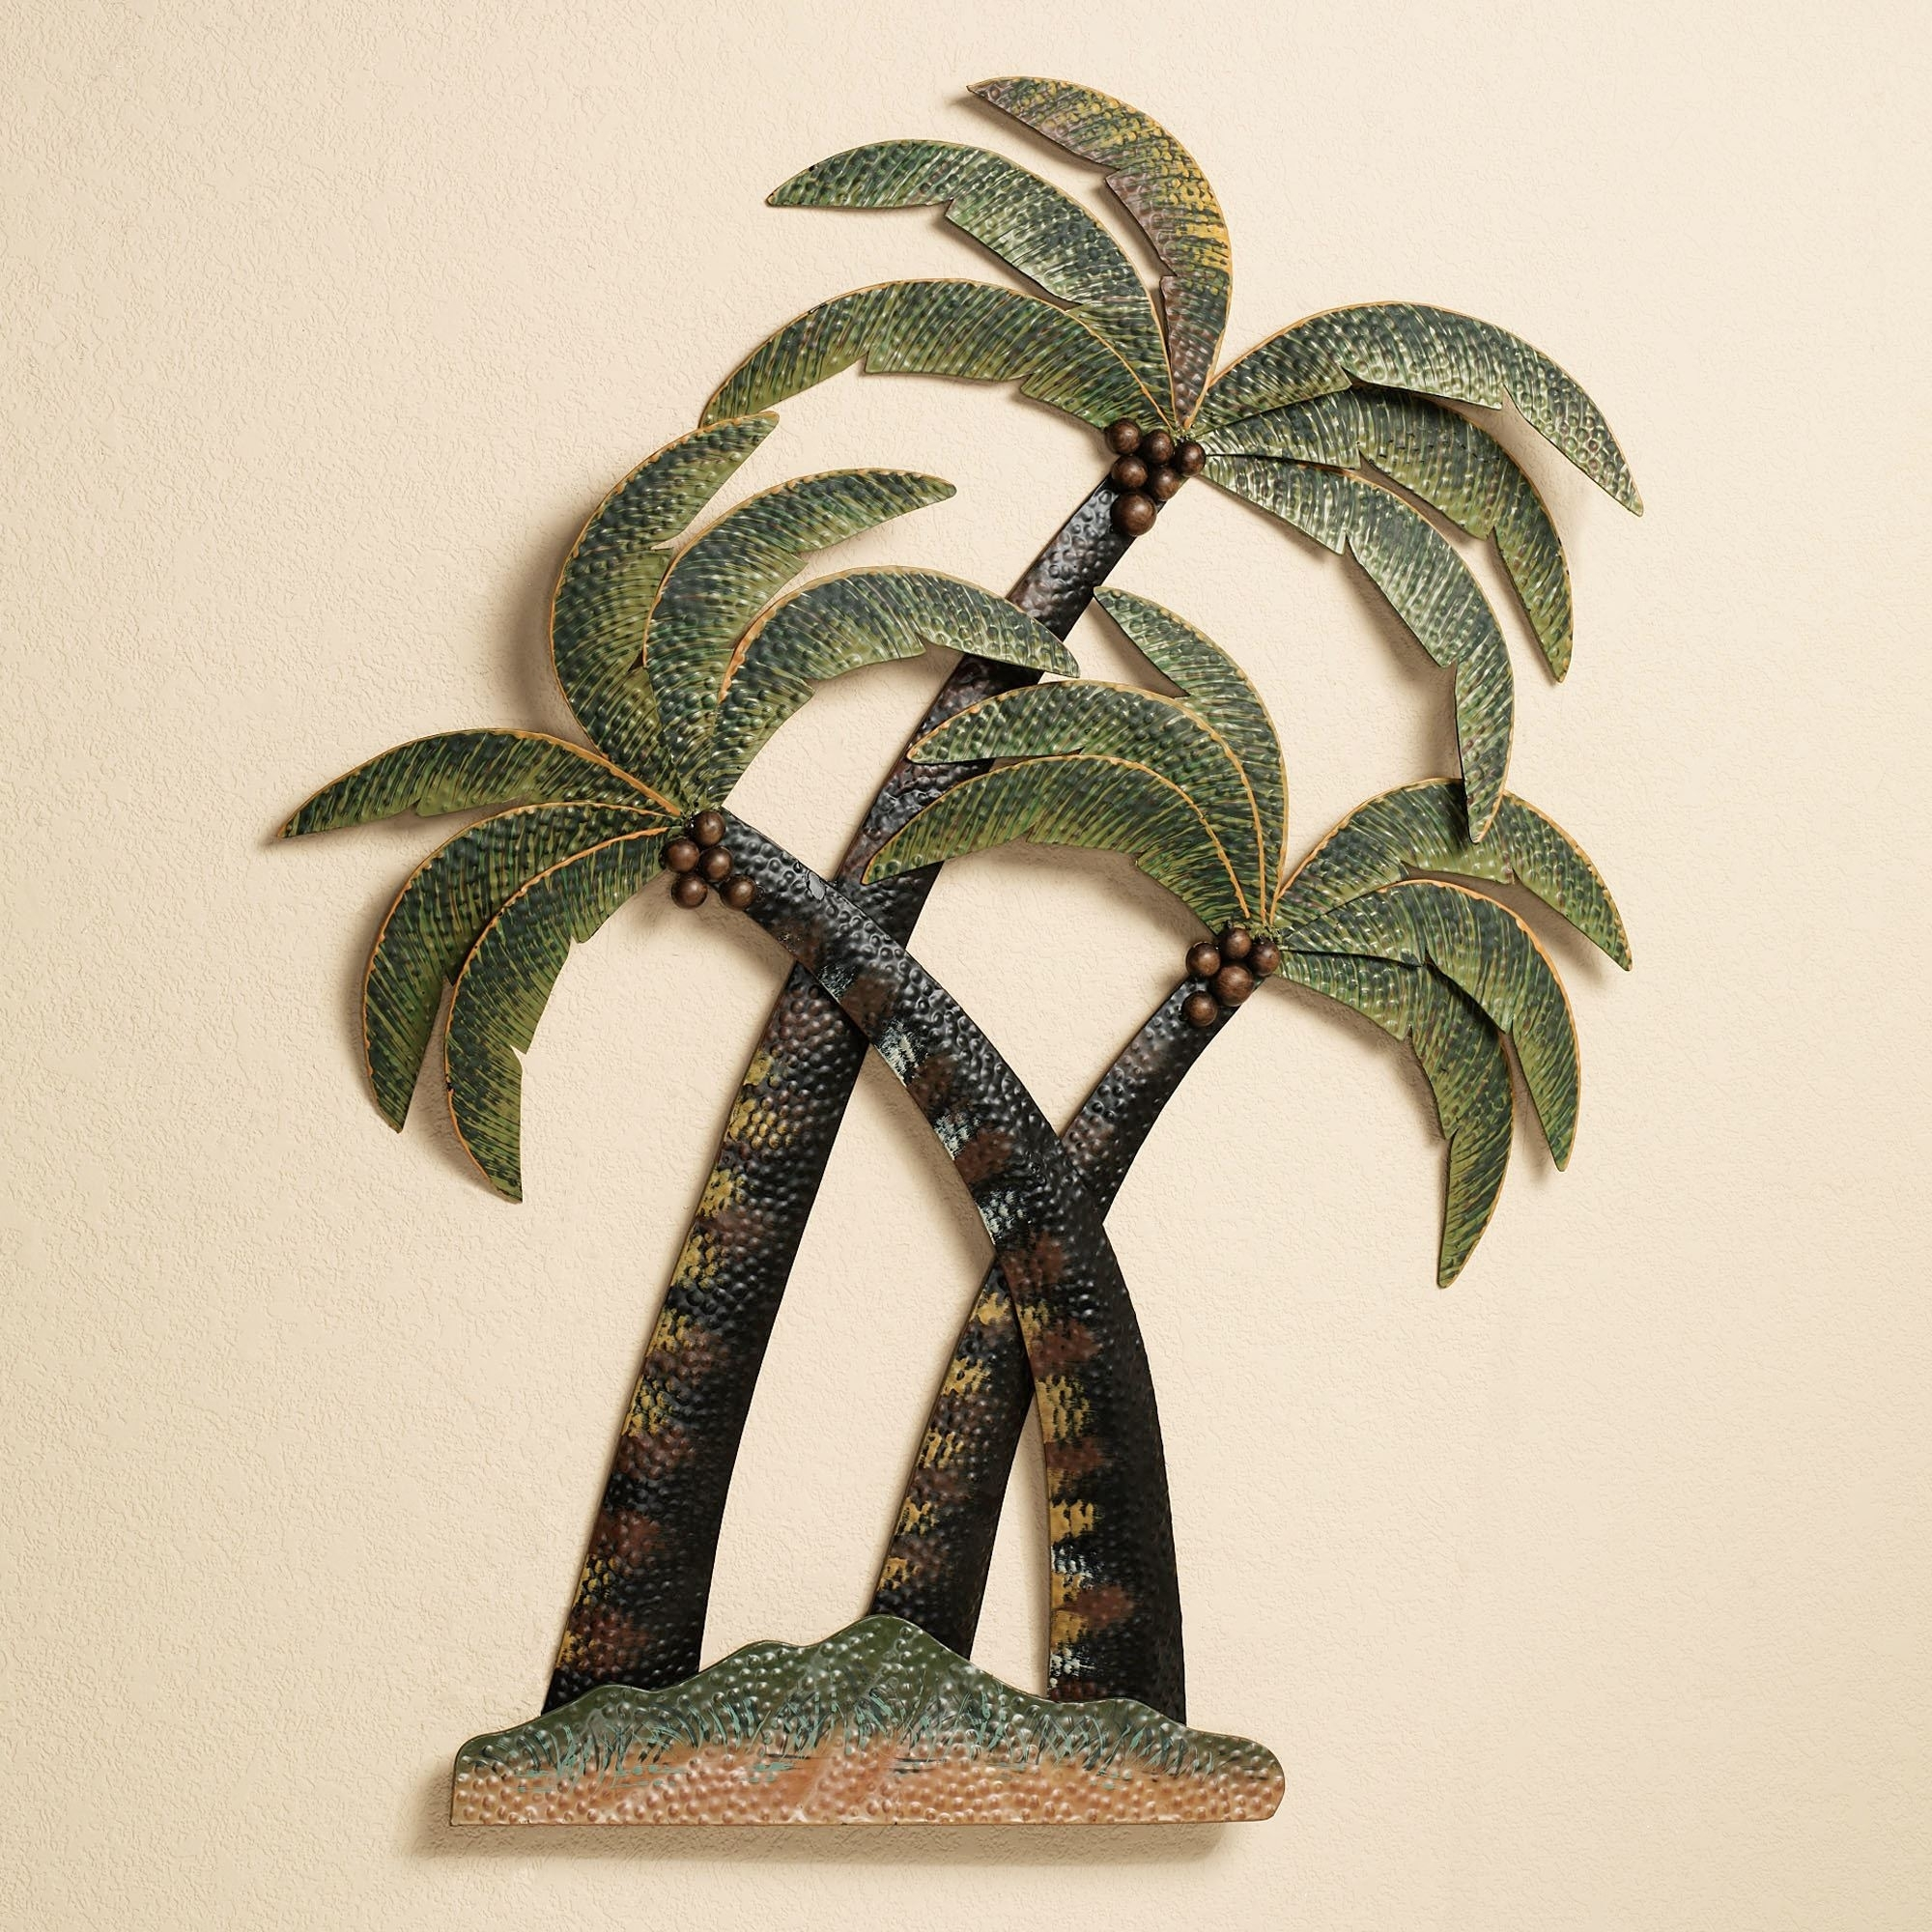 Coco Palm Tree Metal Wall Sculpture With Recent Palm Tree Wall Art (View 8 of 20)